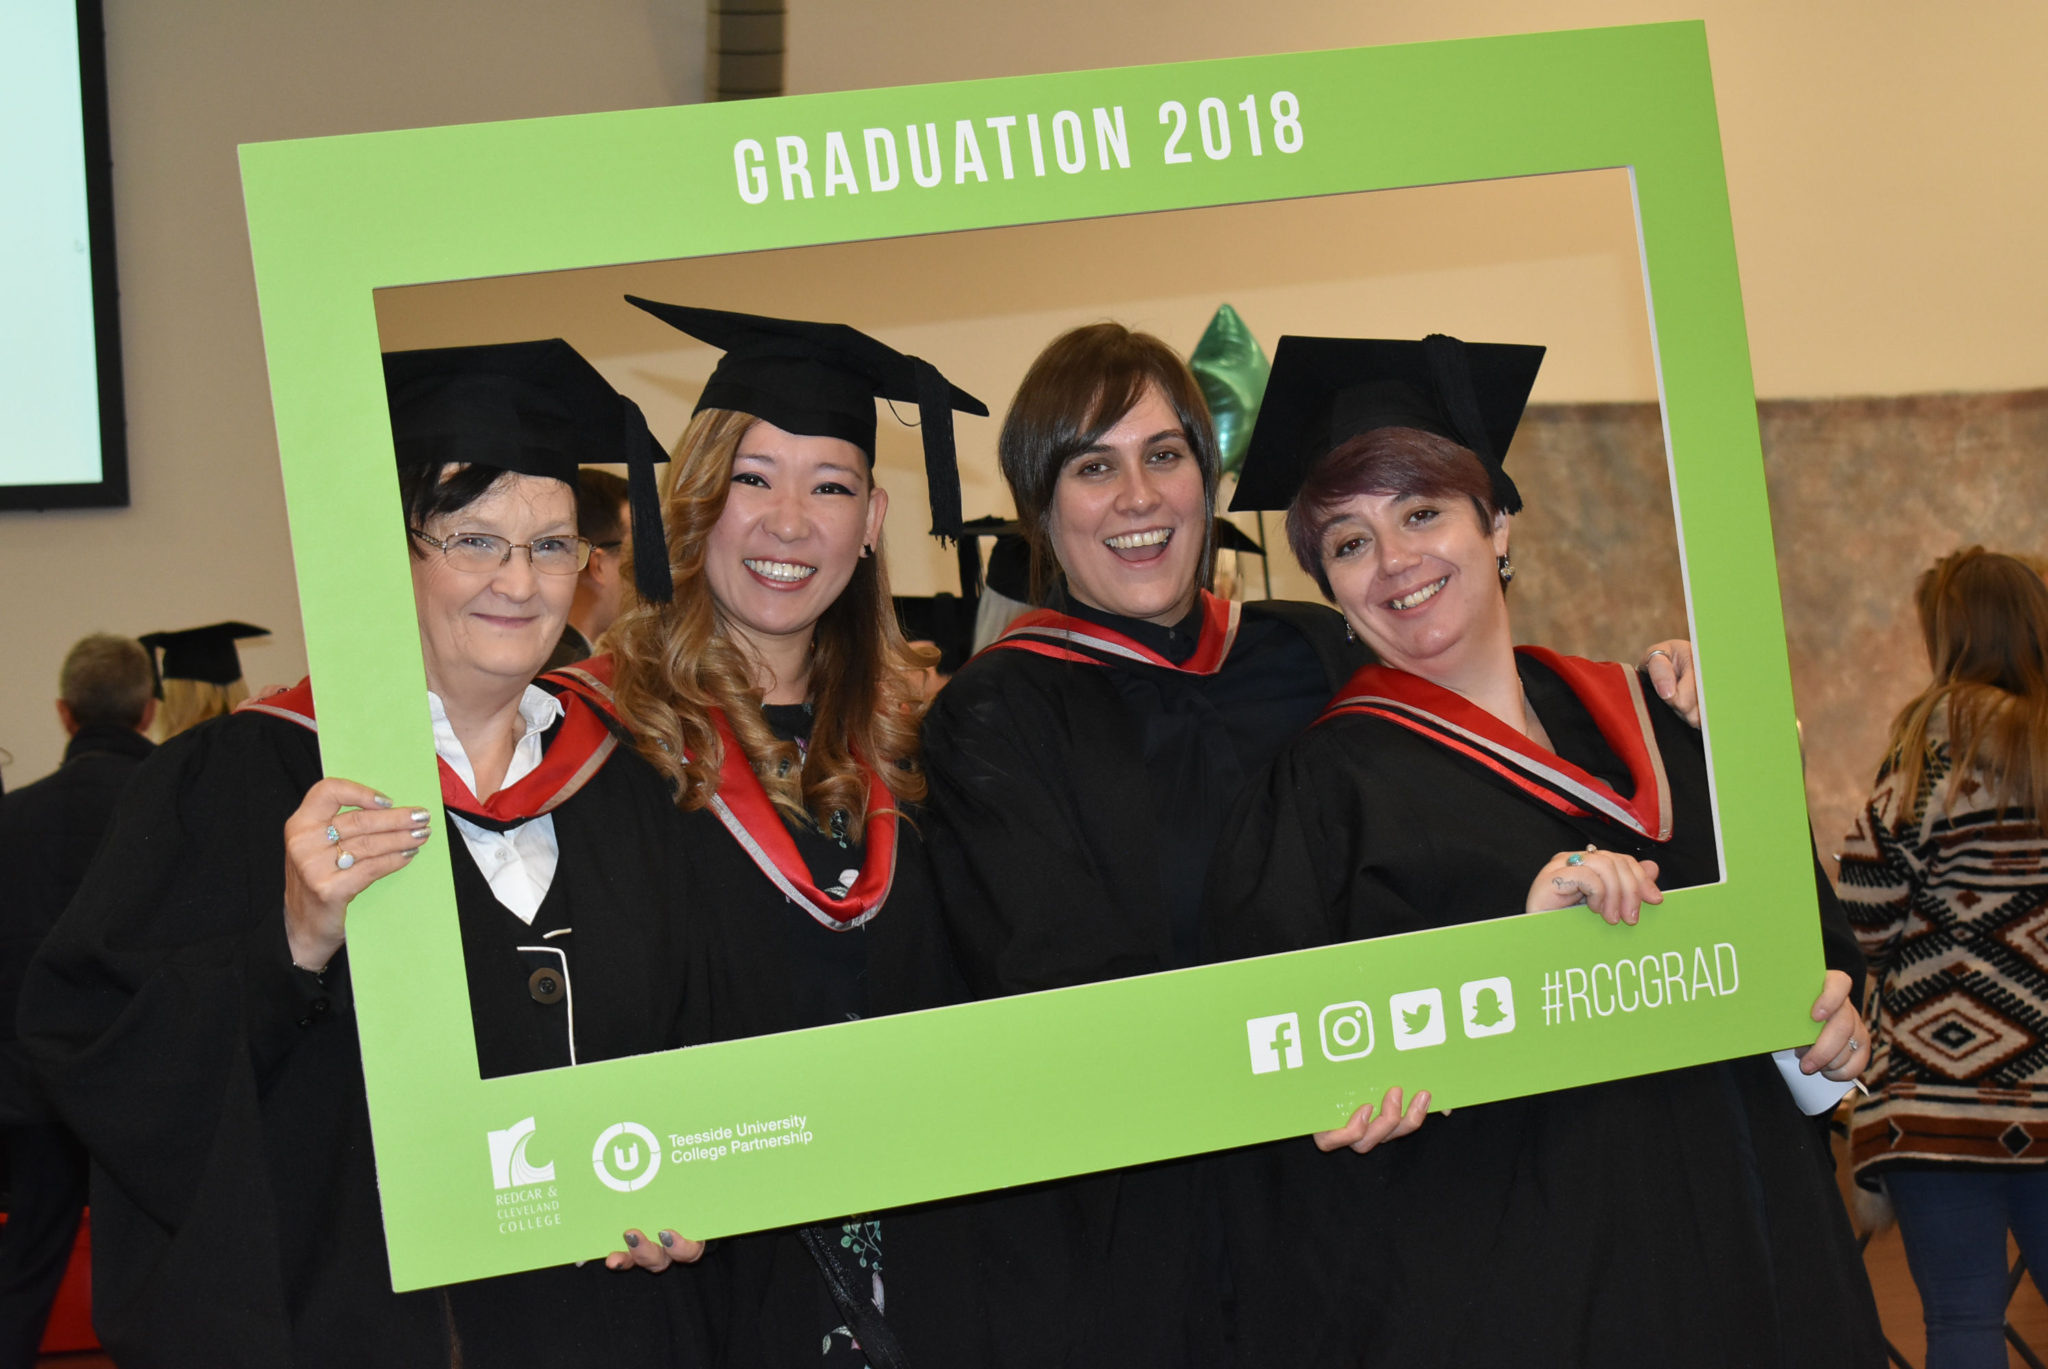 Graduation ceremony celebrates student success in Redcar